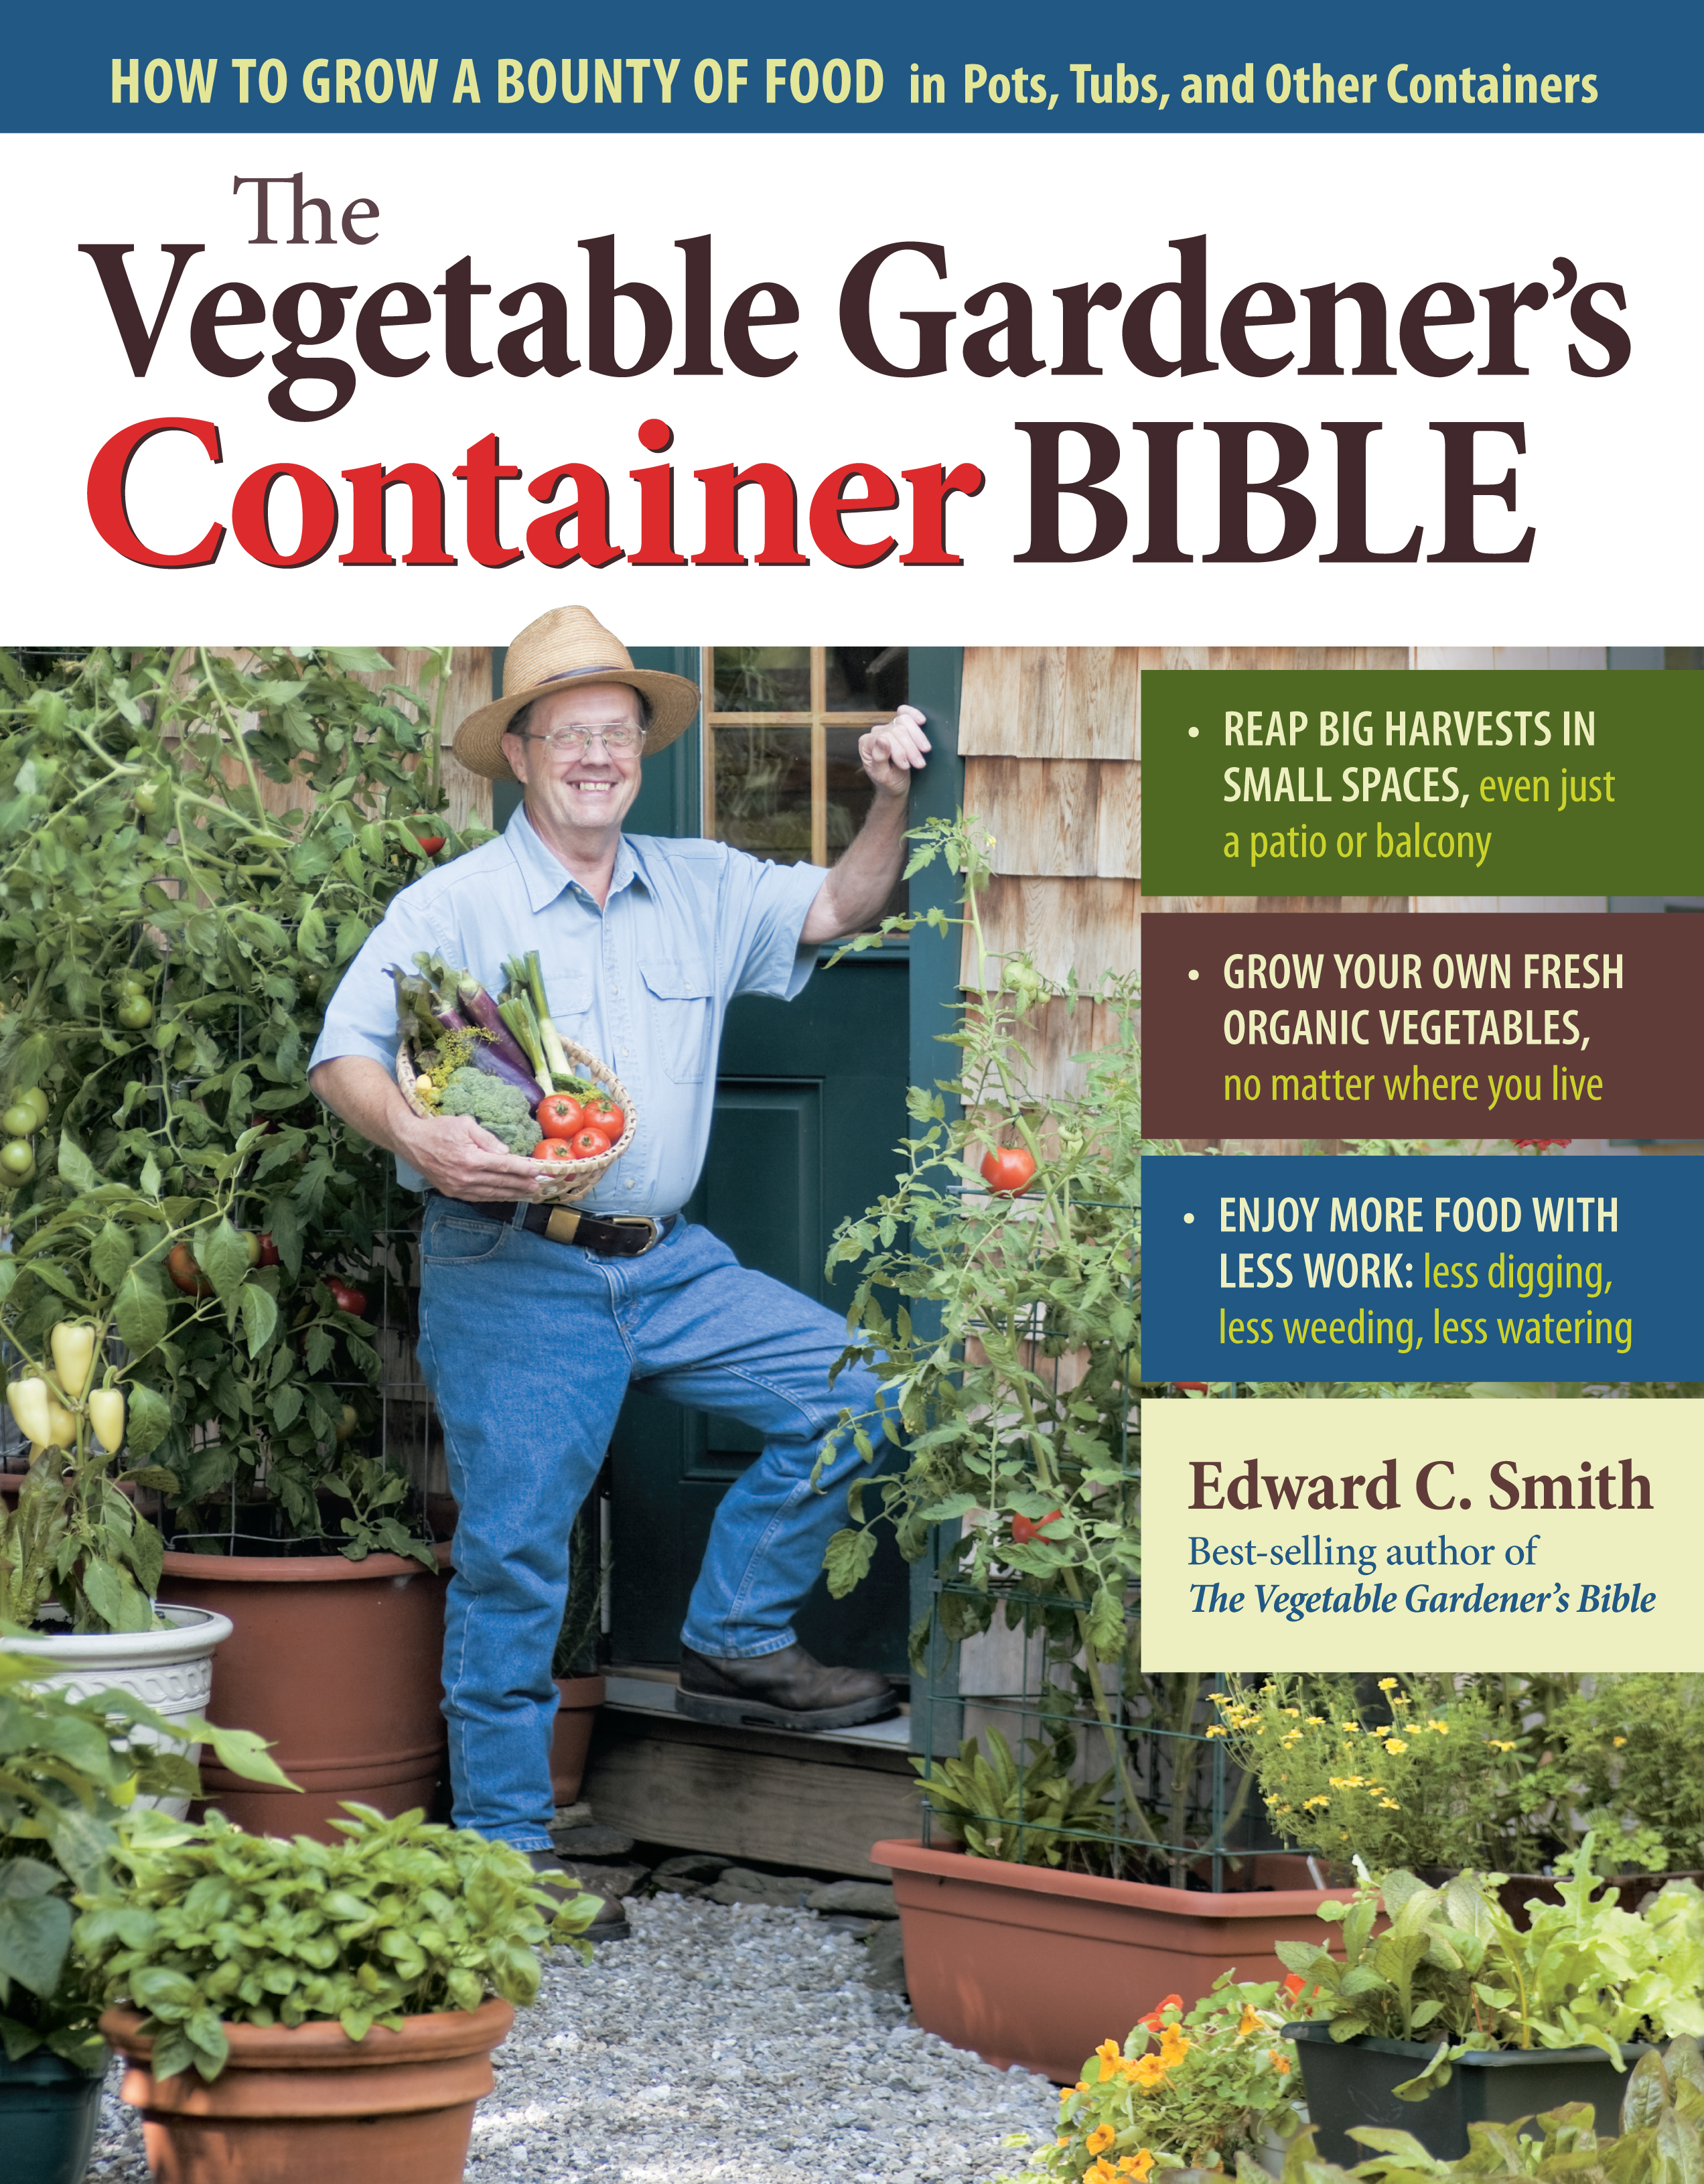 The Vegetable Gardener's Container Bible How to Grow a Bounty of Food in Pots, Tubs, and Other Containers - Edward C. Smith